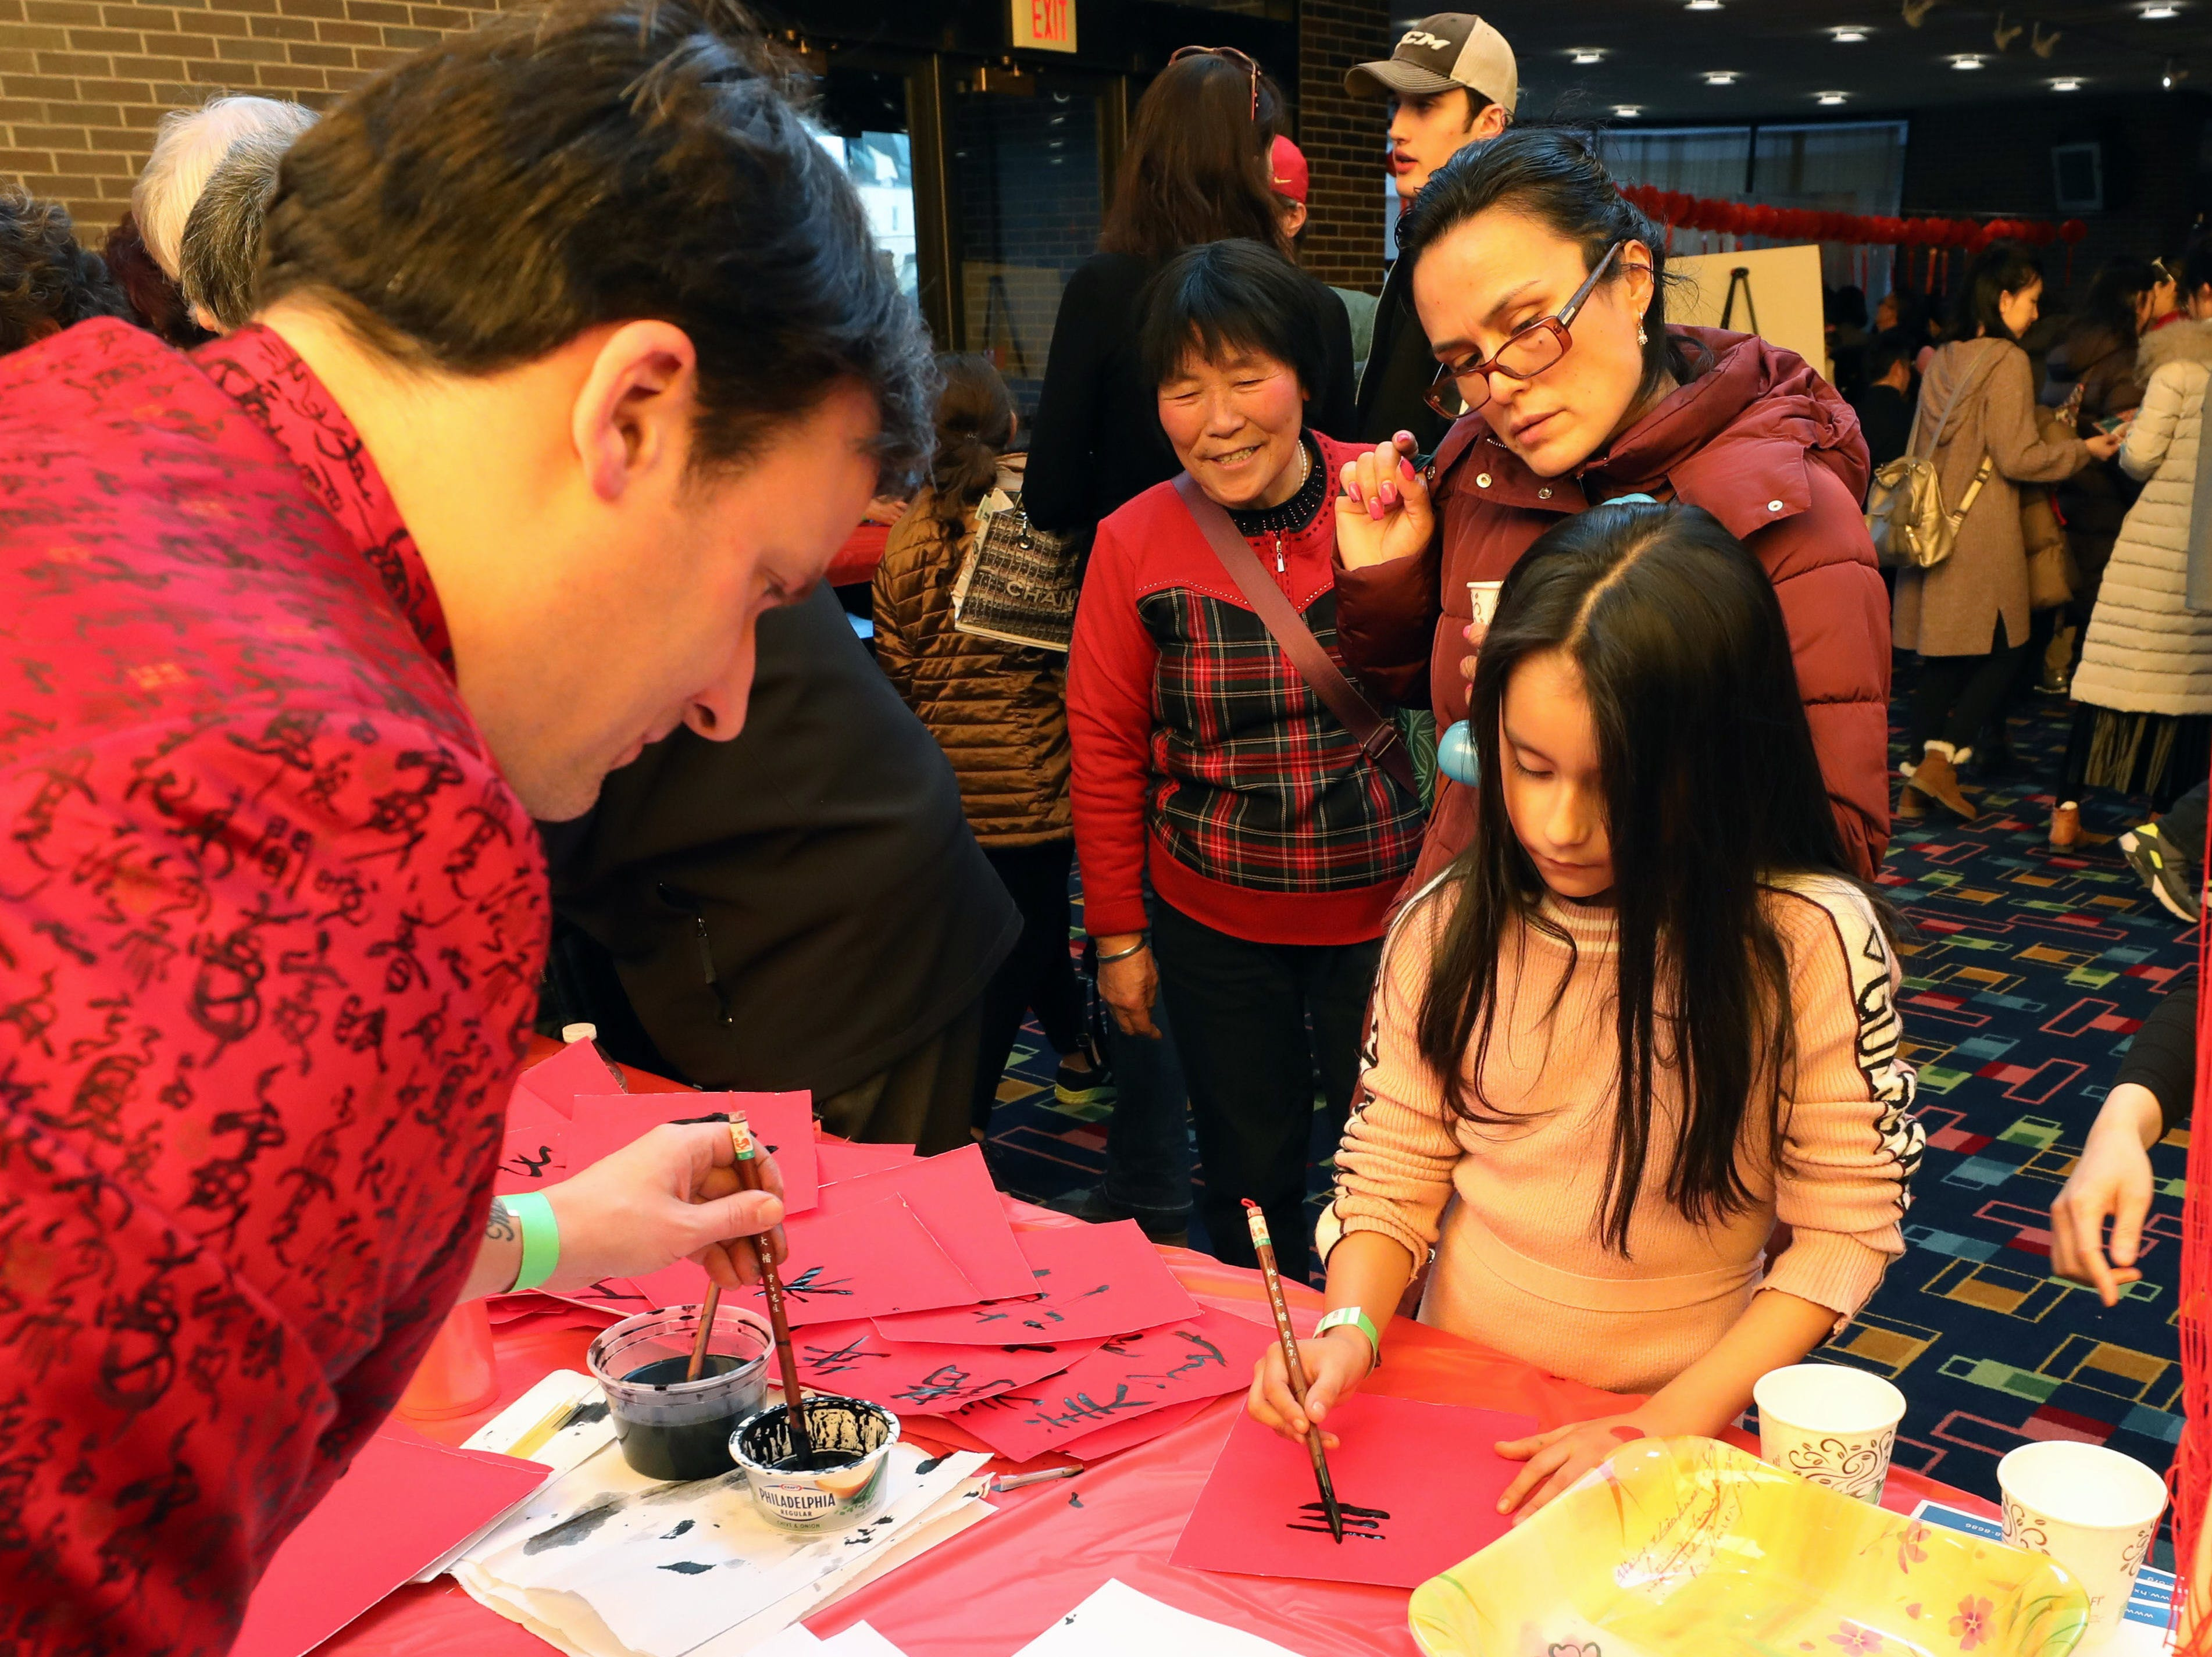 Isabella Creollo, 7, tries her hand at copying a Chinese character, during the 30th Chinese New Year Festival, the Year of the Pig, sponsored by WACA (Westchester Association of Chinese Americans), at The Performing Arts Center at Purchase College SUNY, Feb. 9, 2019.